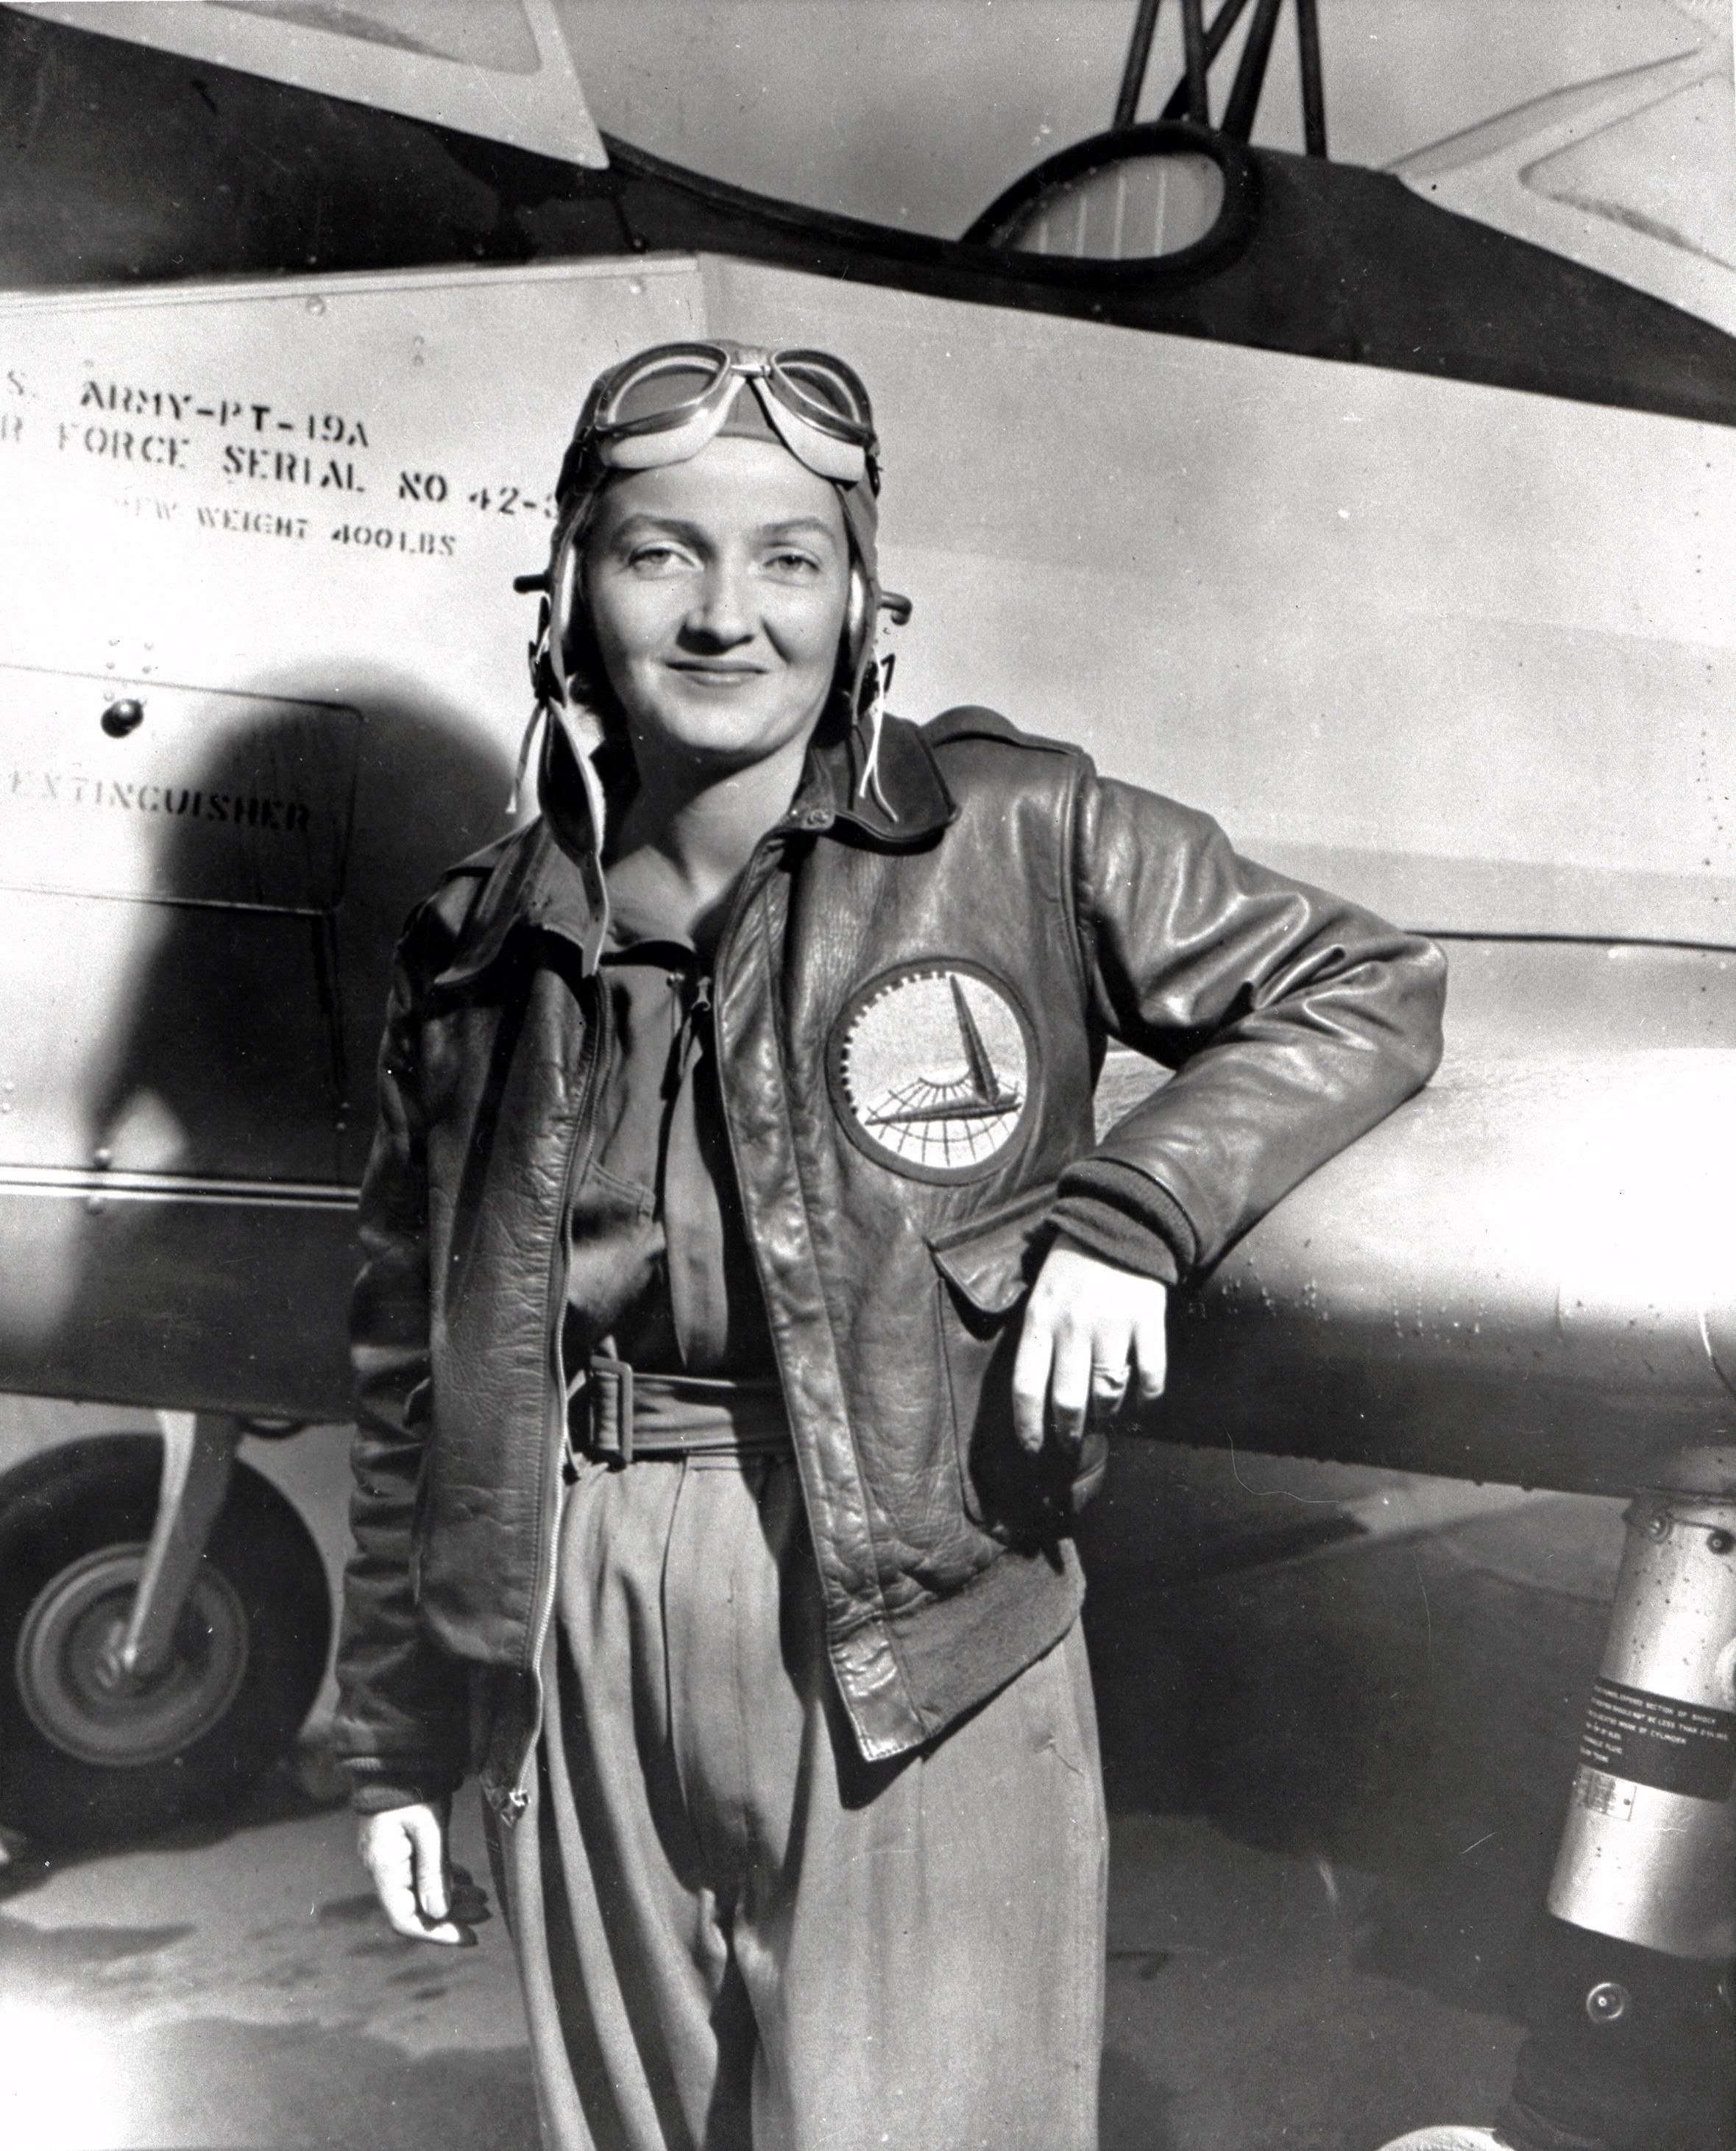 Nancy Harkness Love posing in front of a PT-19A trainer aircraft, 1942 or later Source National Air and Space Museum, Smithsonian Institution Added By David Stubblebine